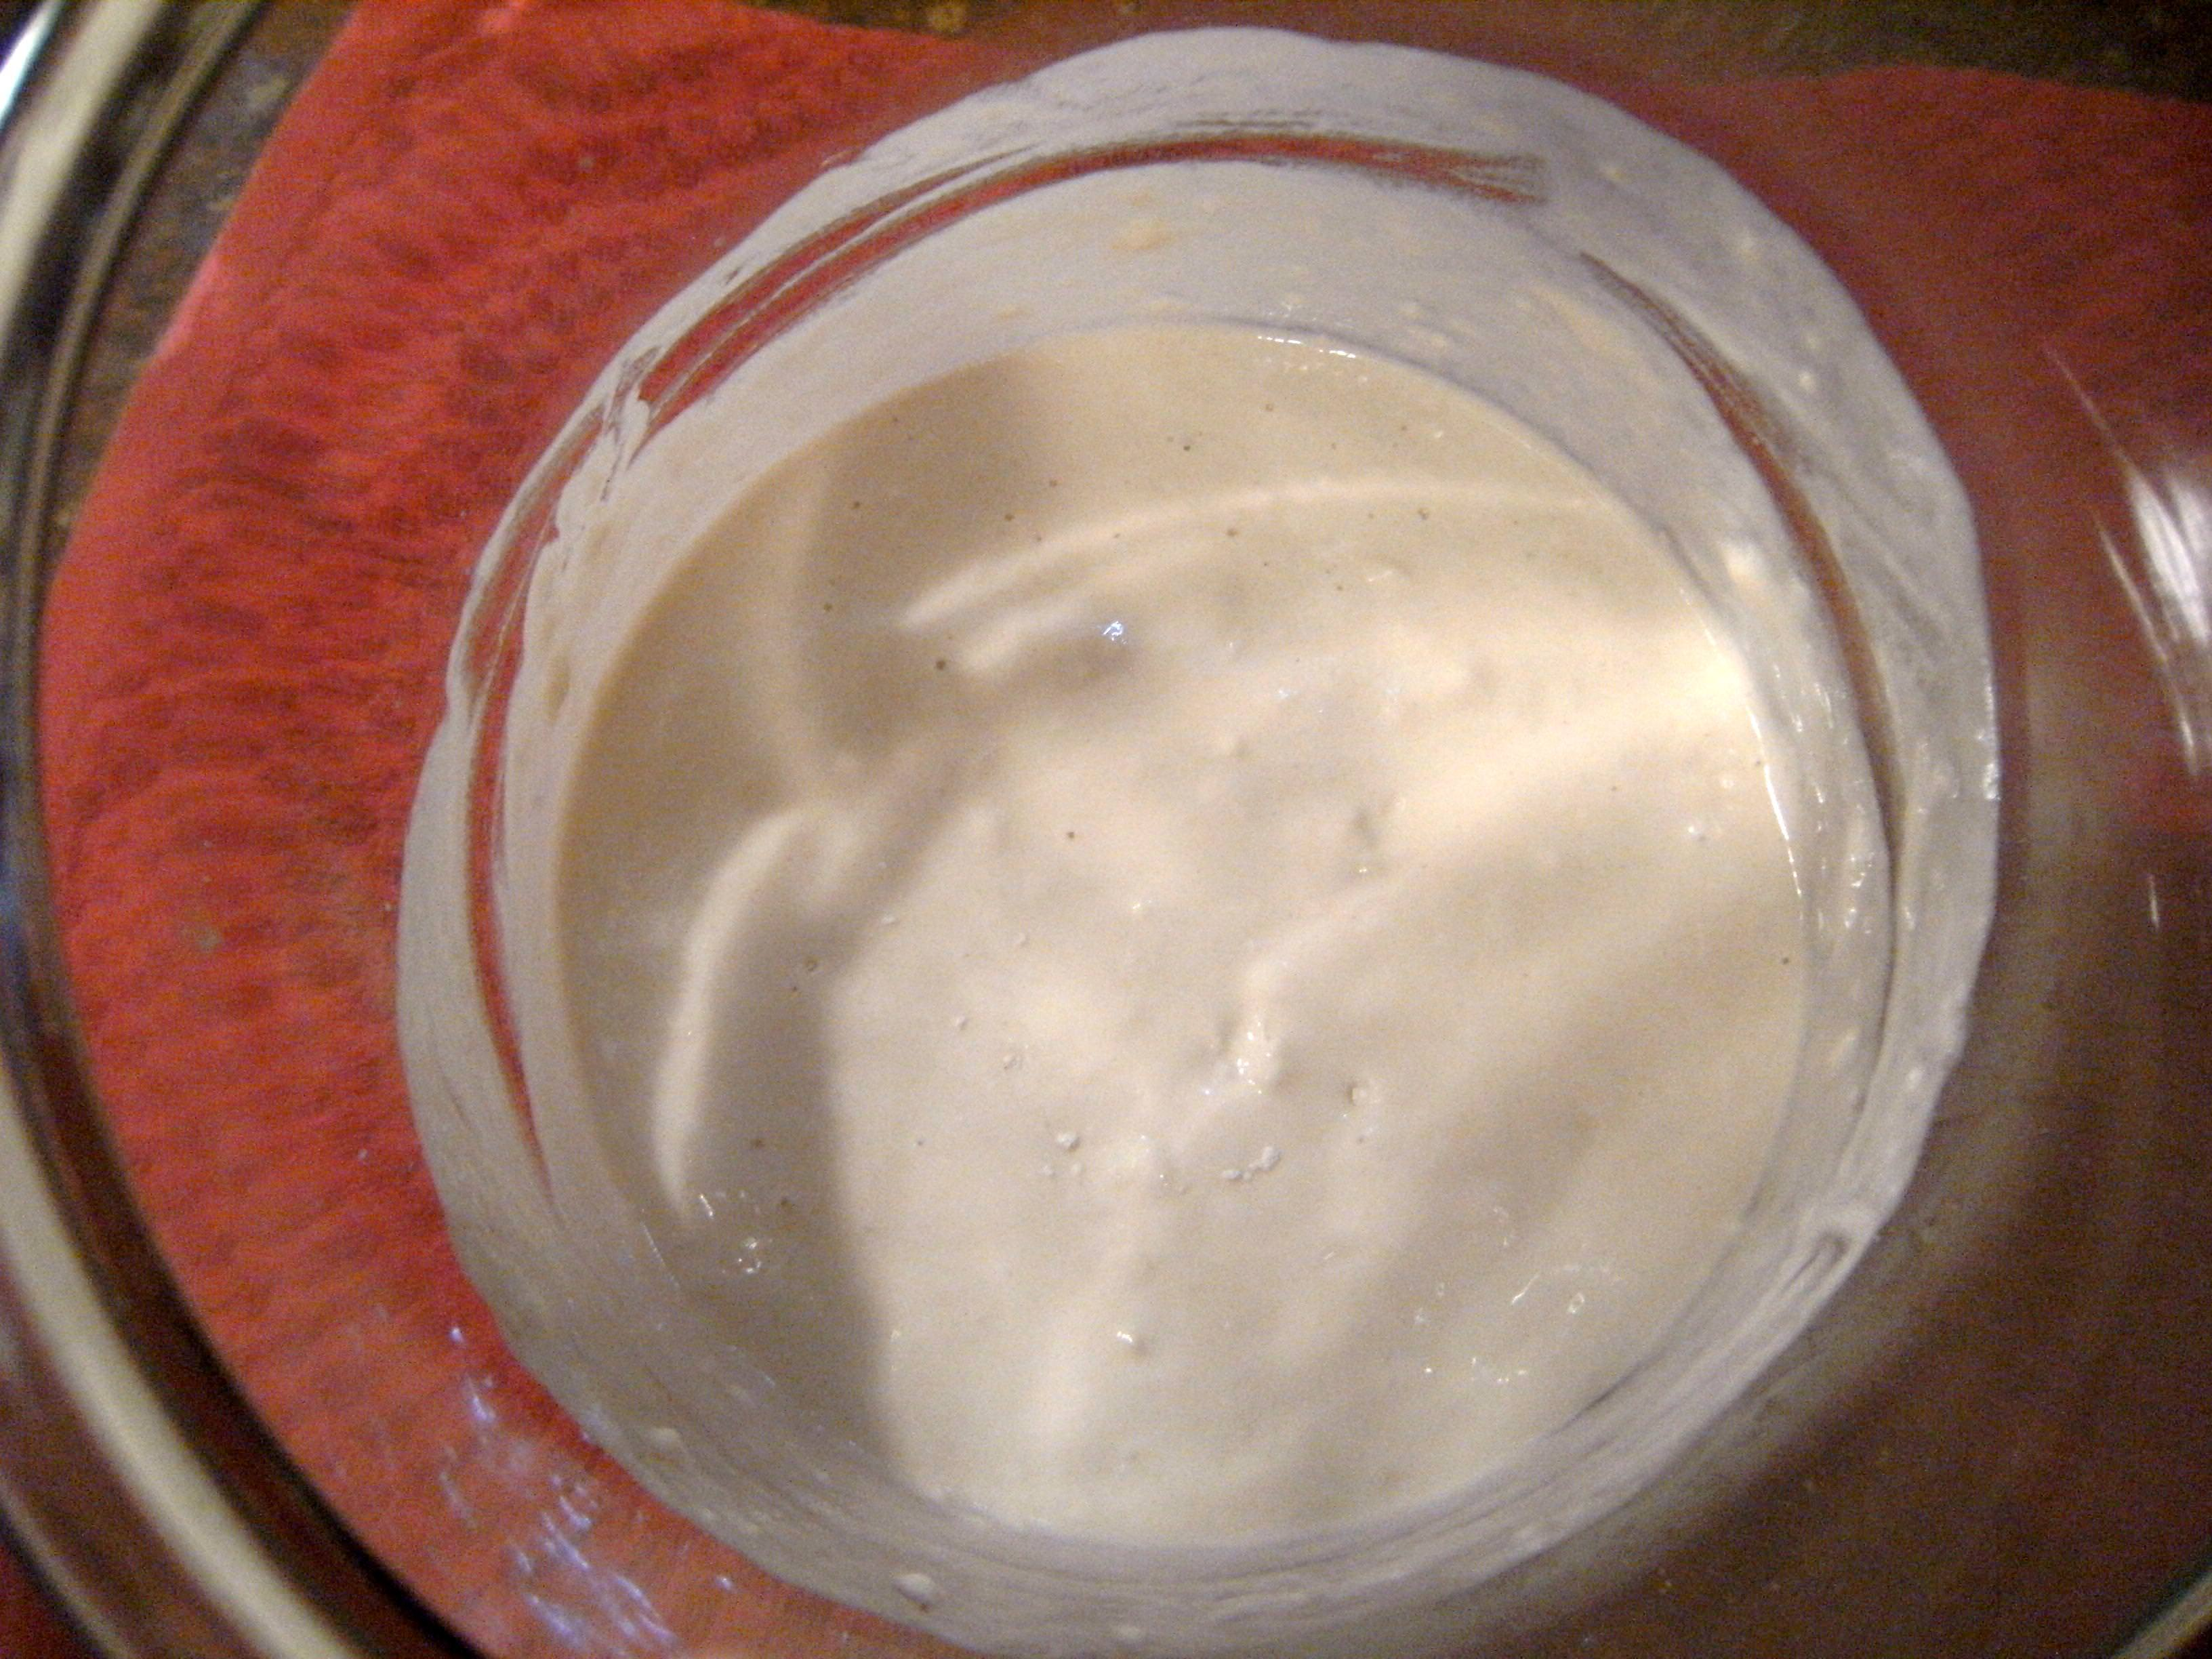 homemade sourdough starter is bubbling